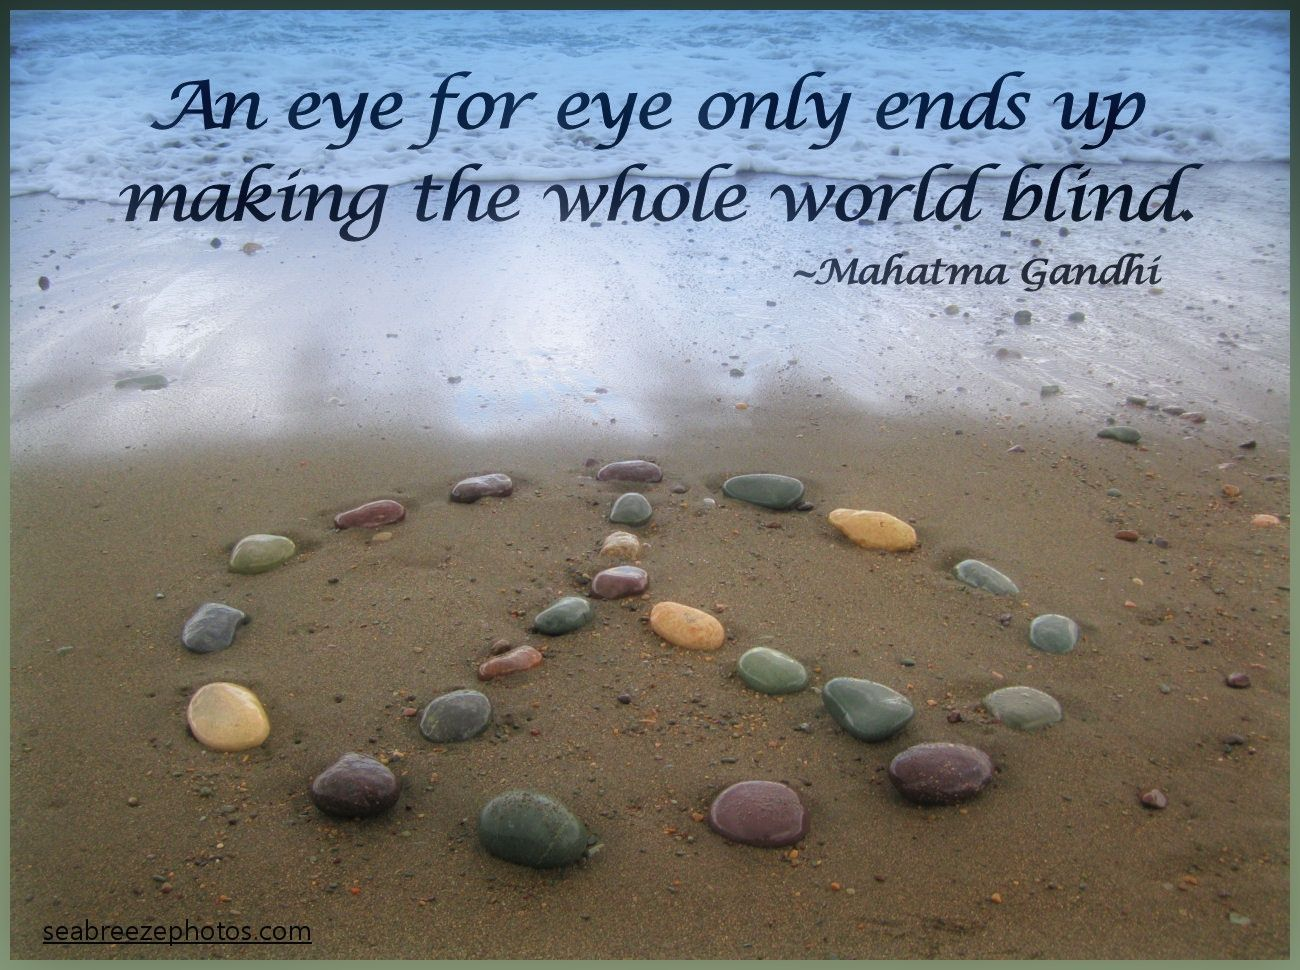 World Peace Quotes An Eye For Eye Only Ends Up Making The Whole World Blind .